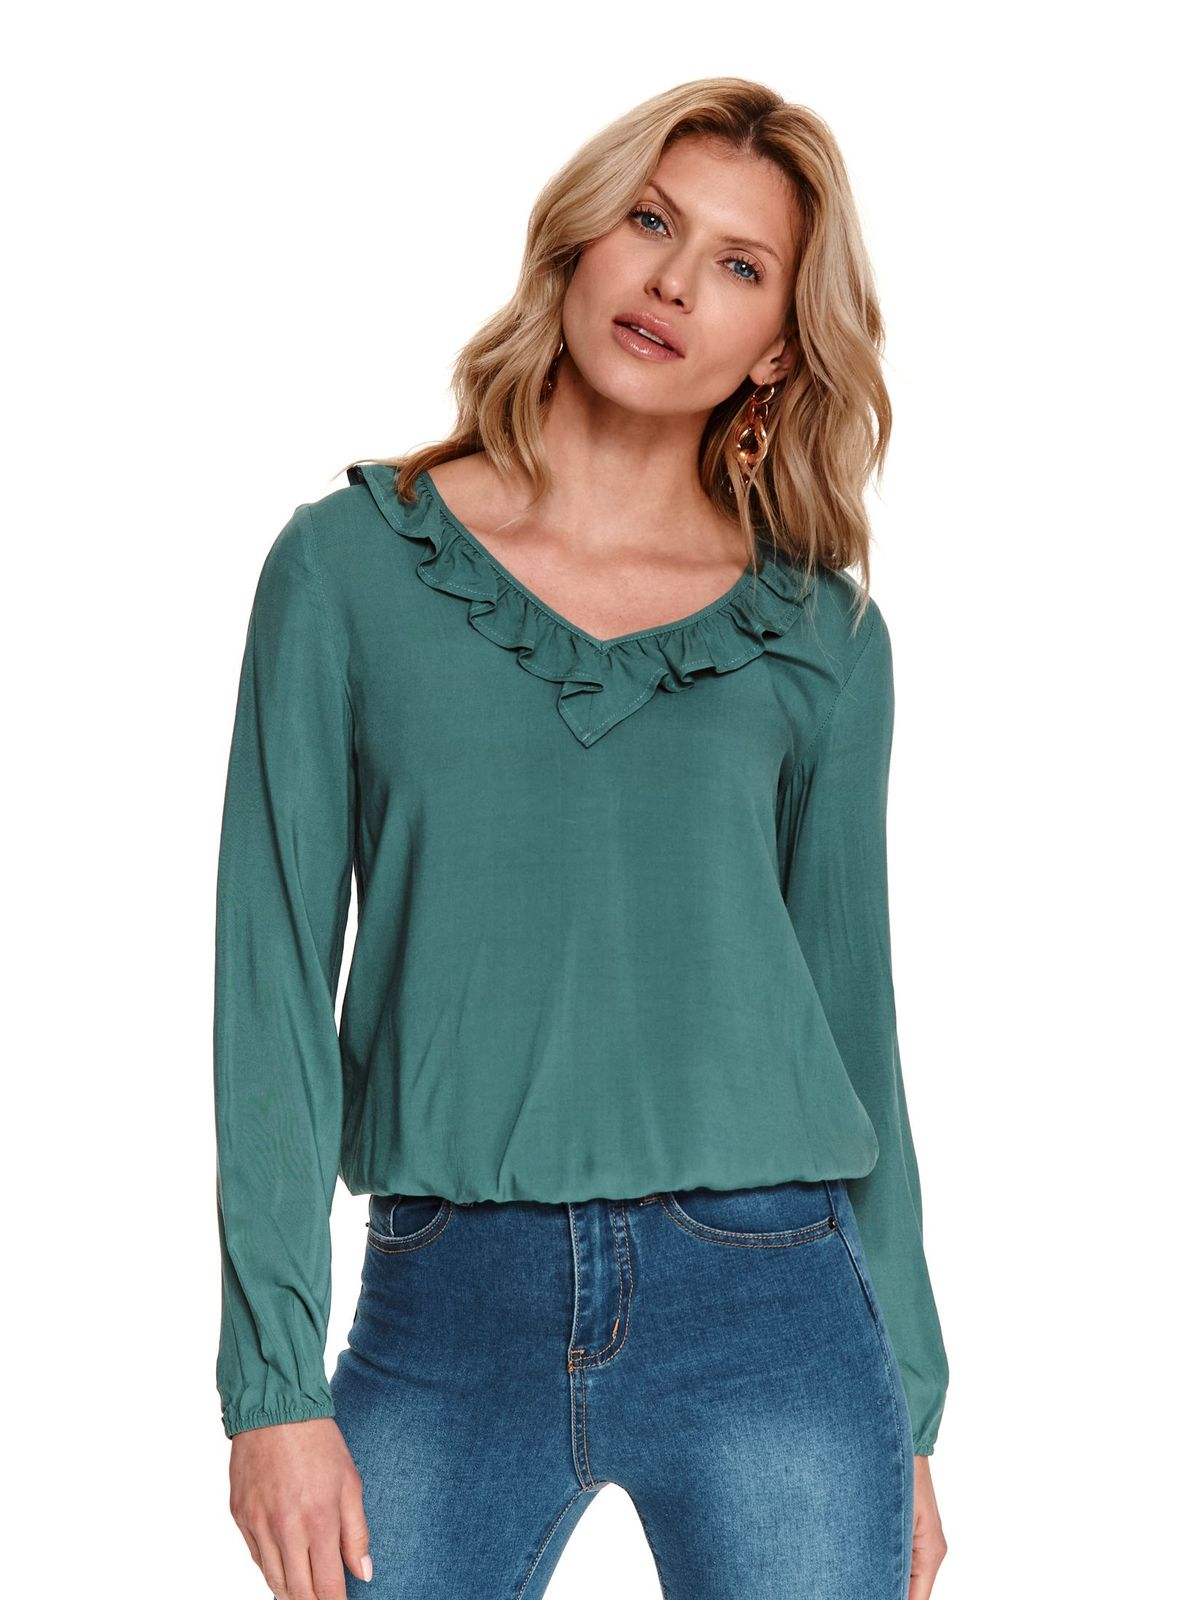 Darkgreen women`s blouse loose fit with ruffle details with elastic waist